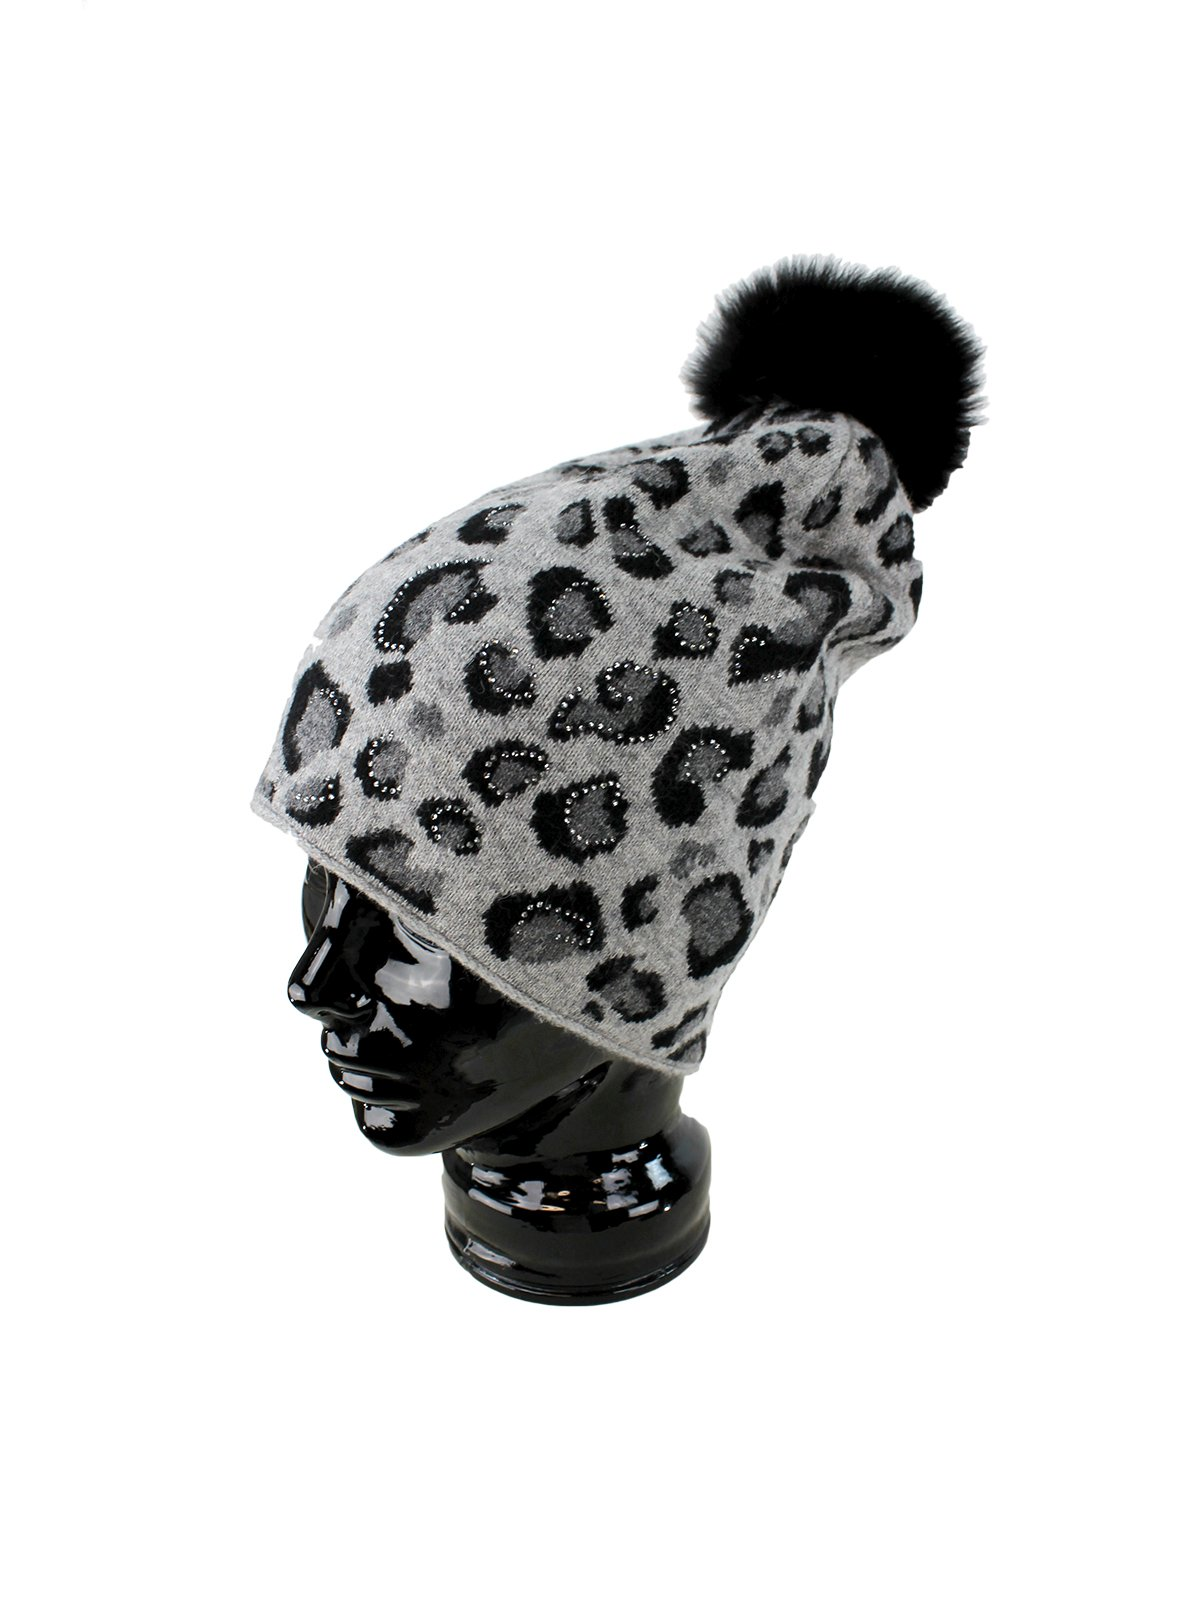 Woman's Black and Grey Animal Print Wool Knit Hat with Fox Fur Pom Pom